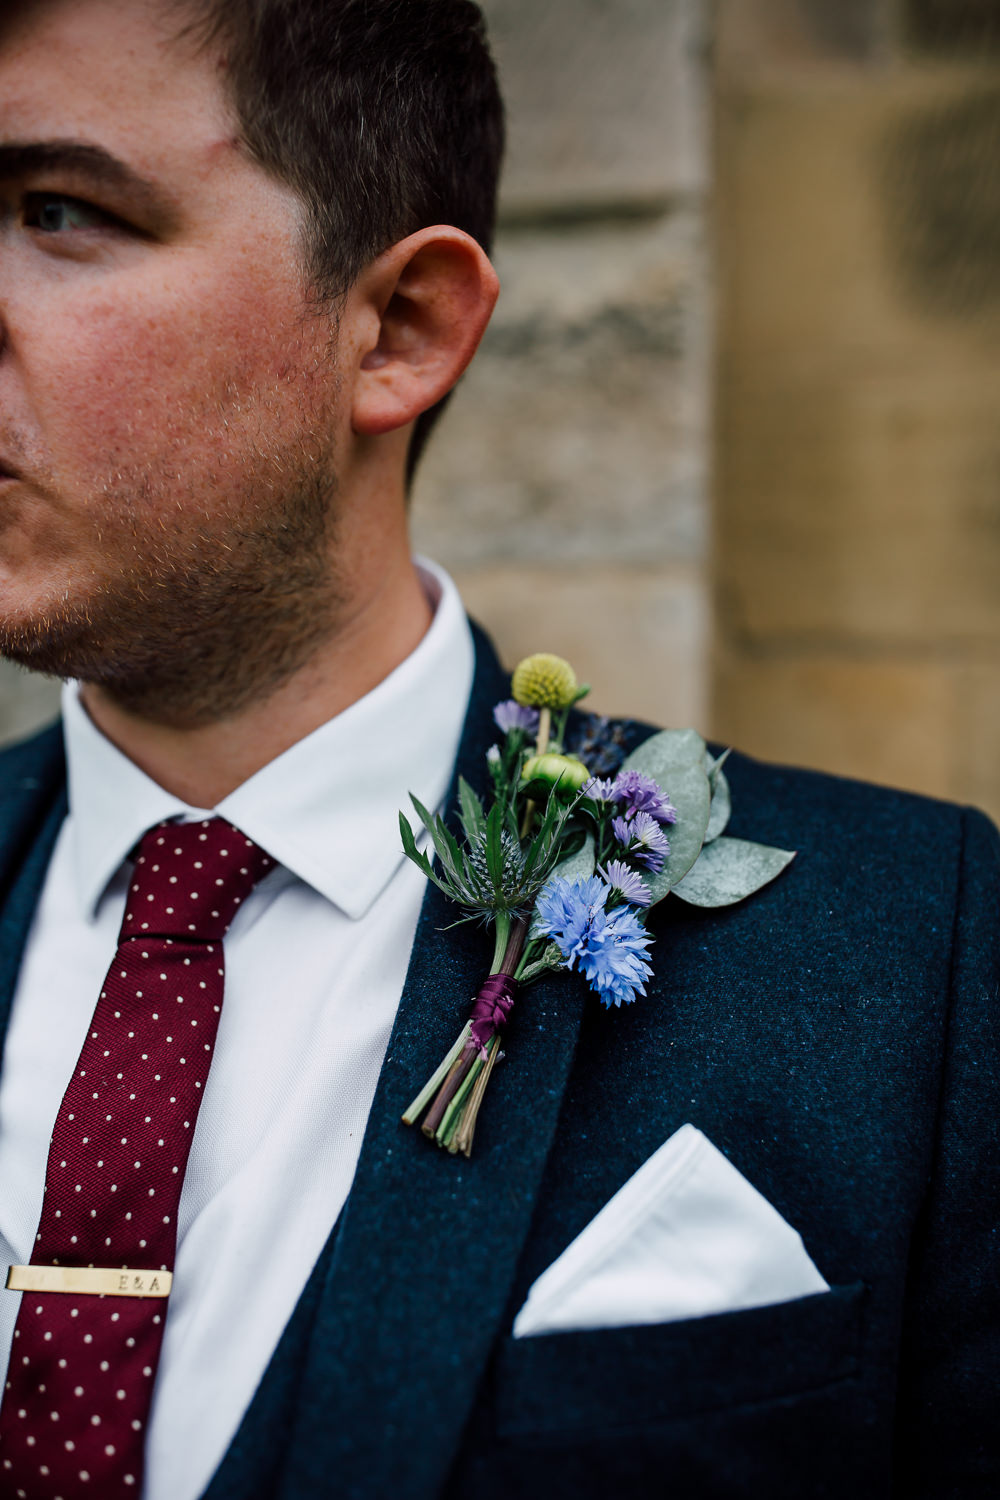 Buttonhole Flowers Groom Groomsmen Barff Country House Wedding Sarah Beth Photo